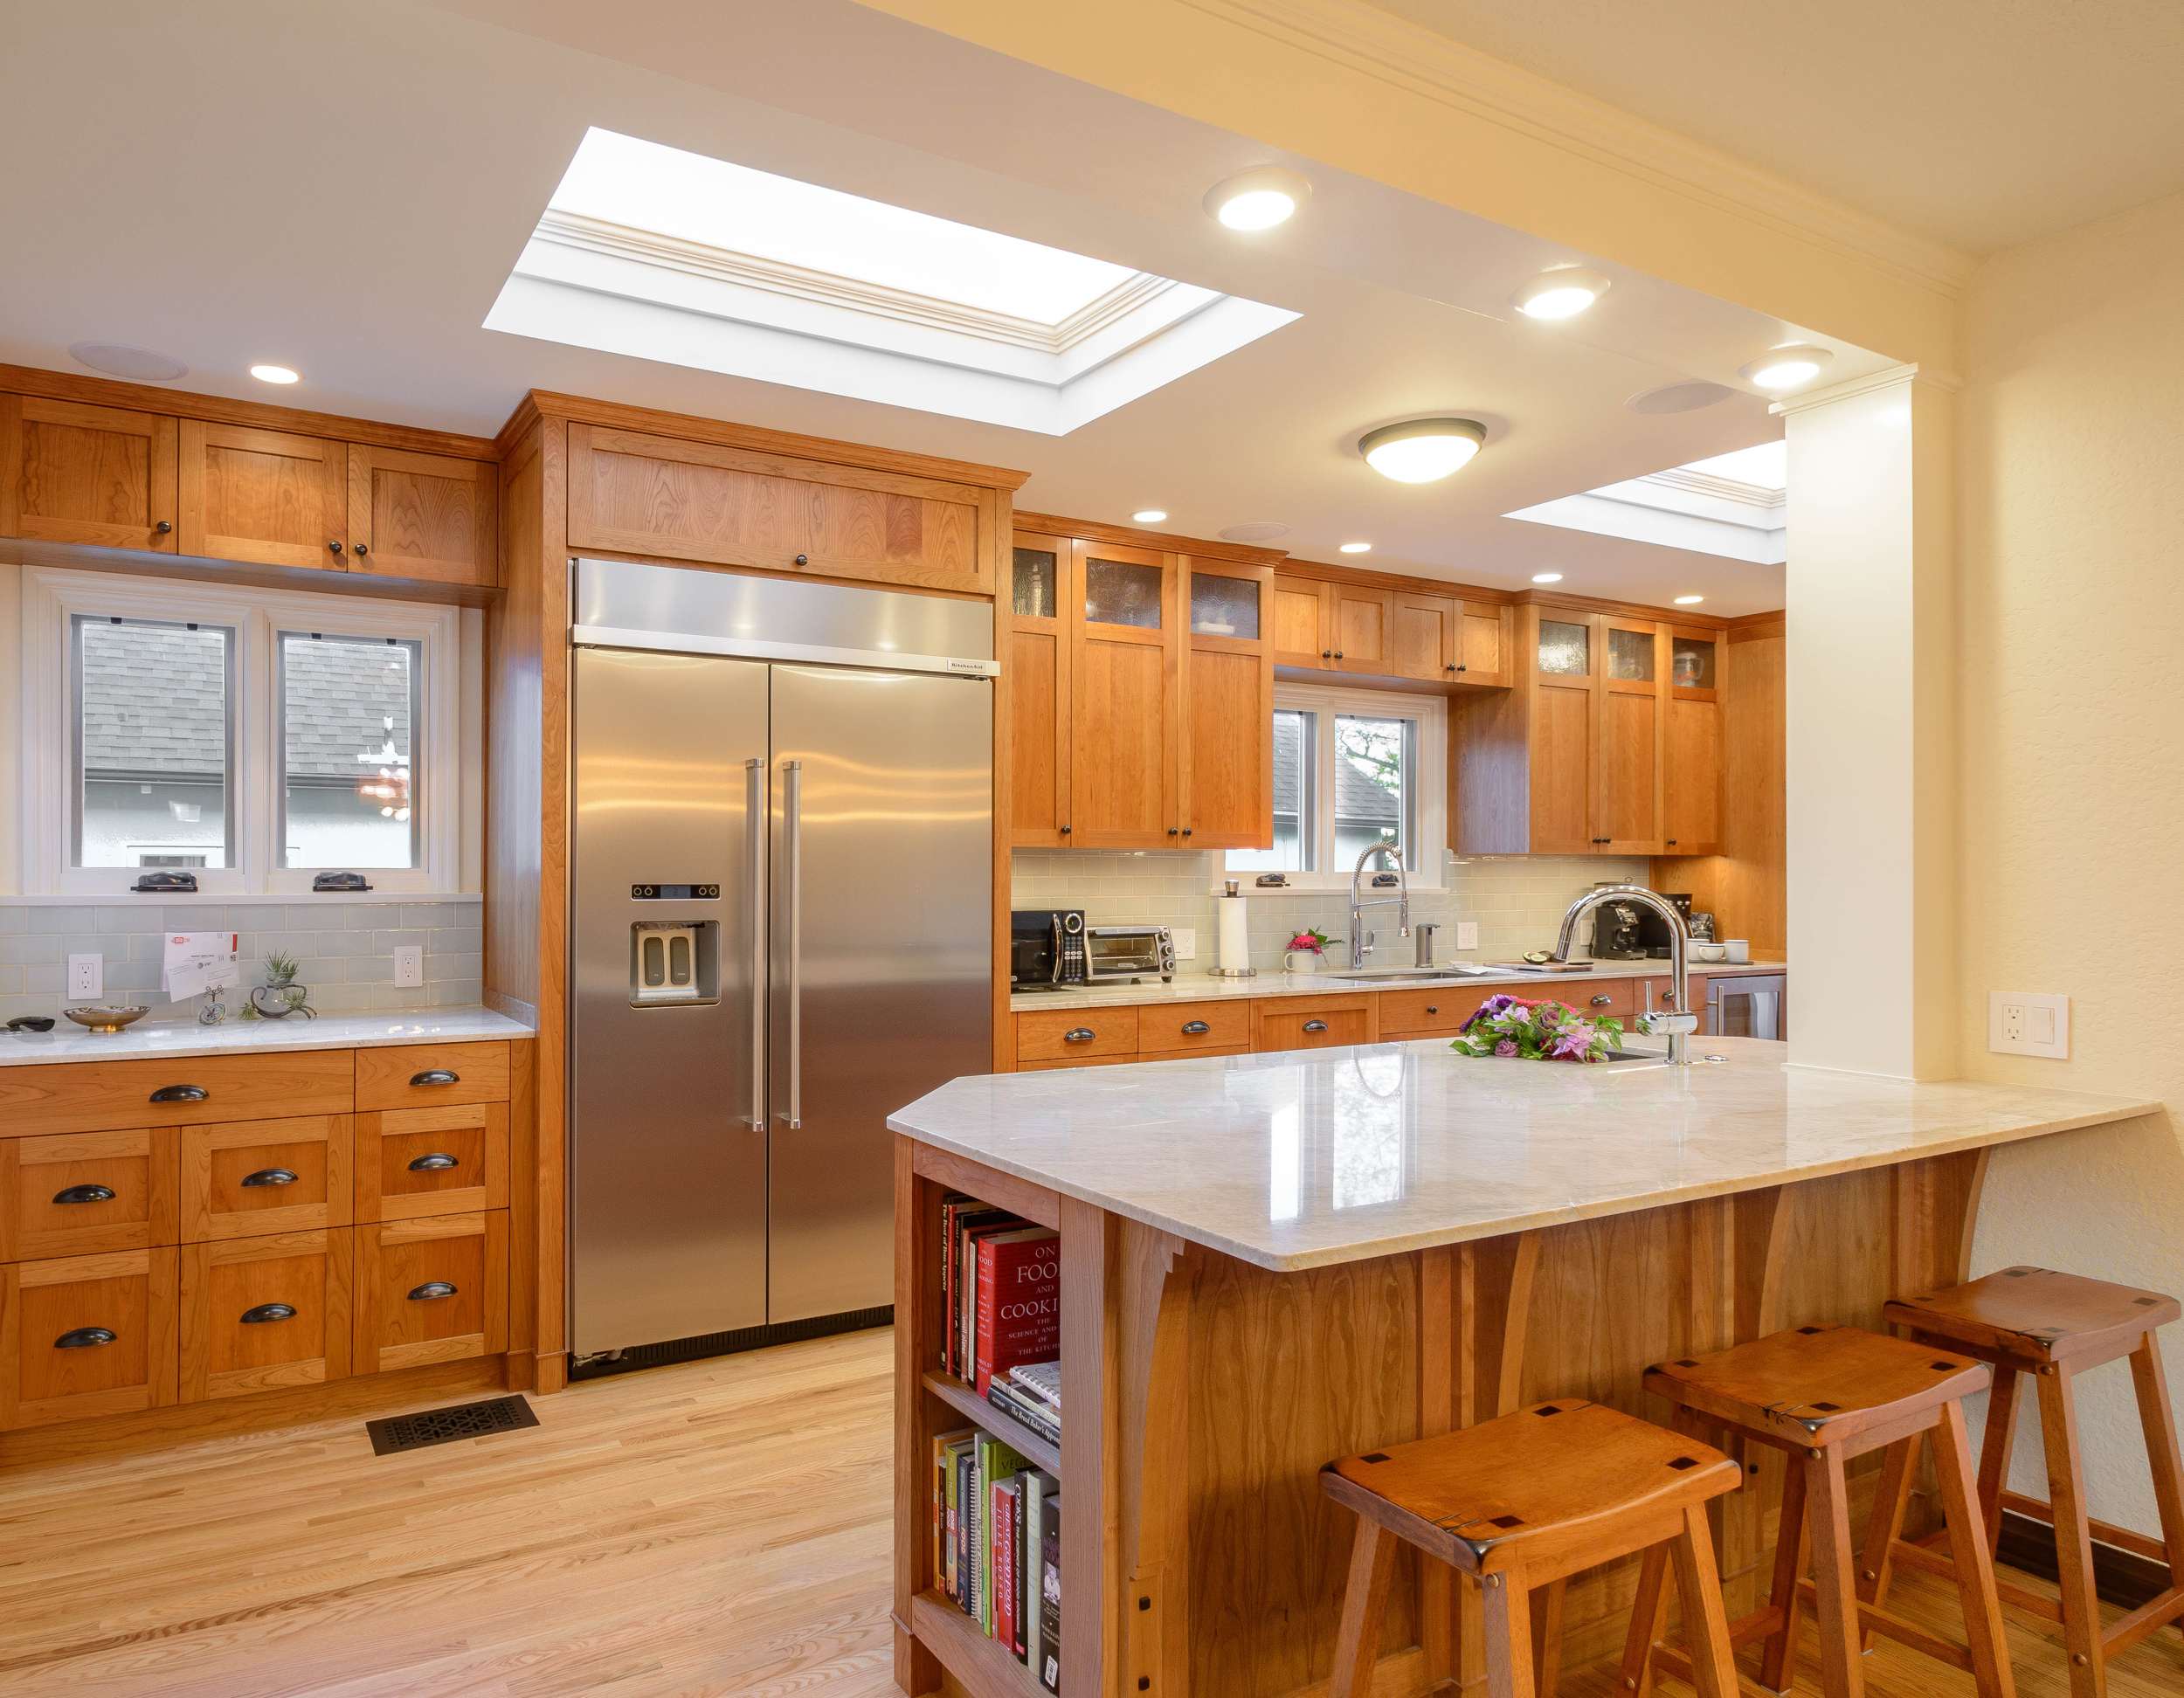 Impeccable lines and plenty of light for this Tudor kitchen remodel with custom-built cherry cabinets, accent hardware, oak floor, and a peninsula with a white stone countertop and bar seating area